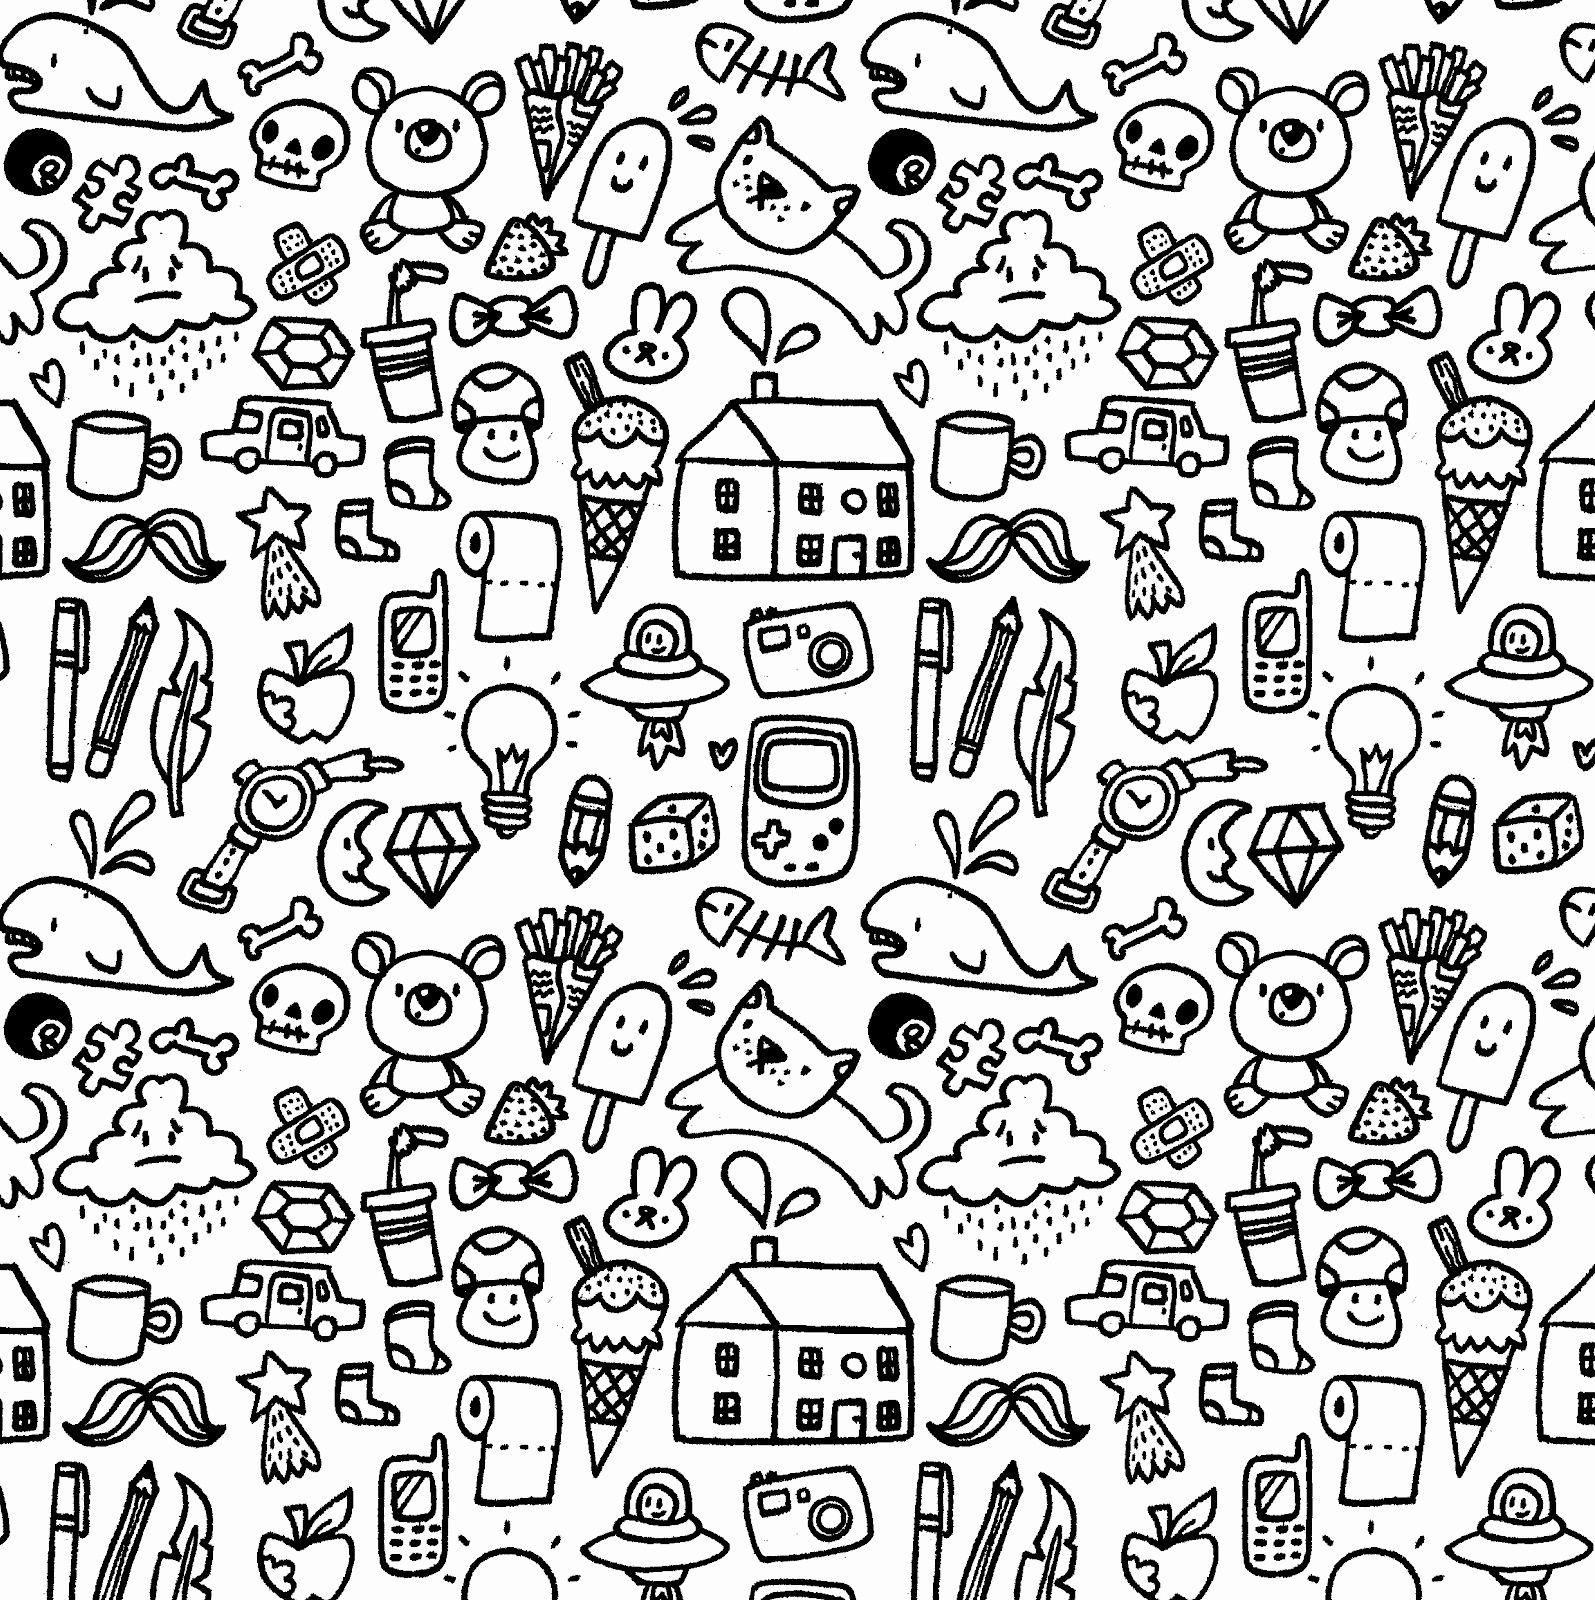 Black And White Doodle Wallpapers Top Free Black And White Doodle Backgrounds Wallpaperaccess